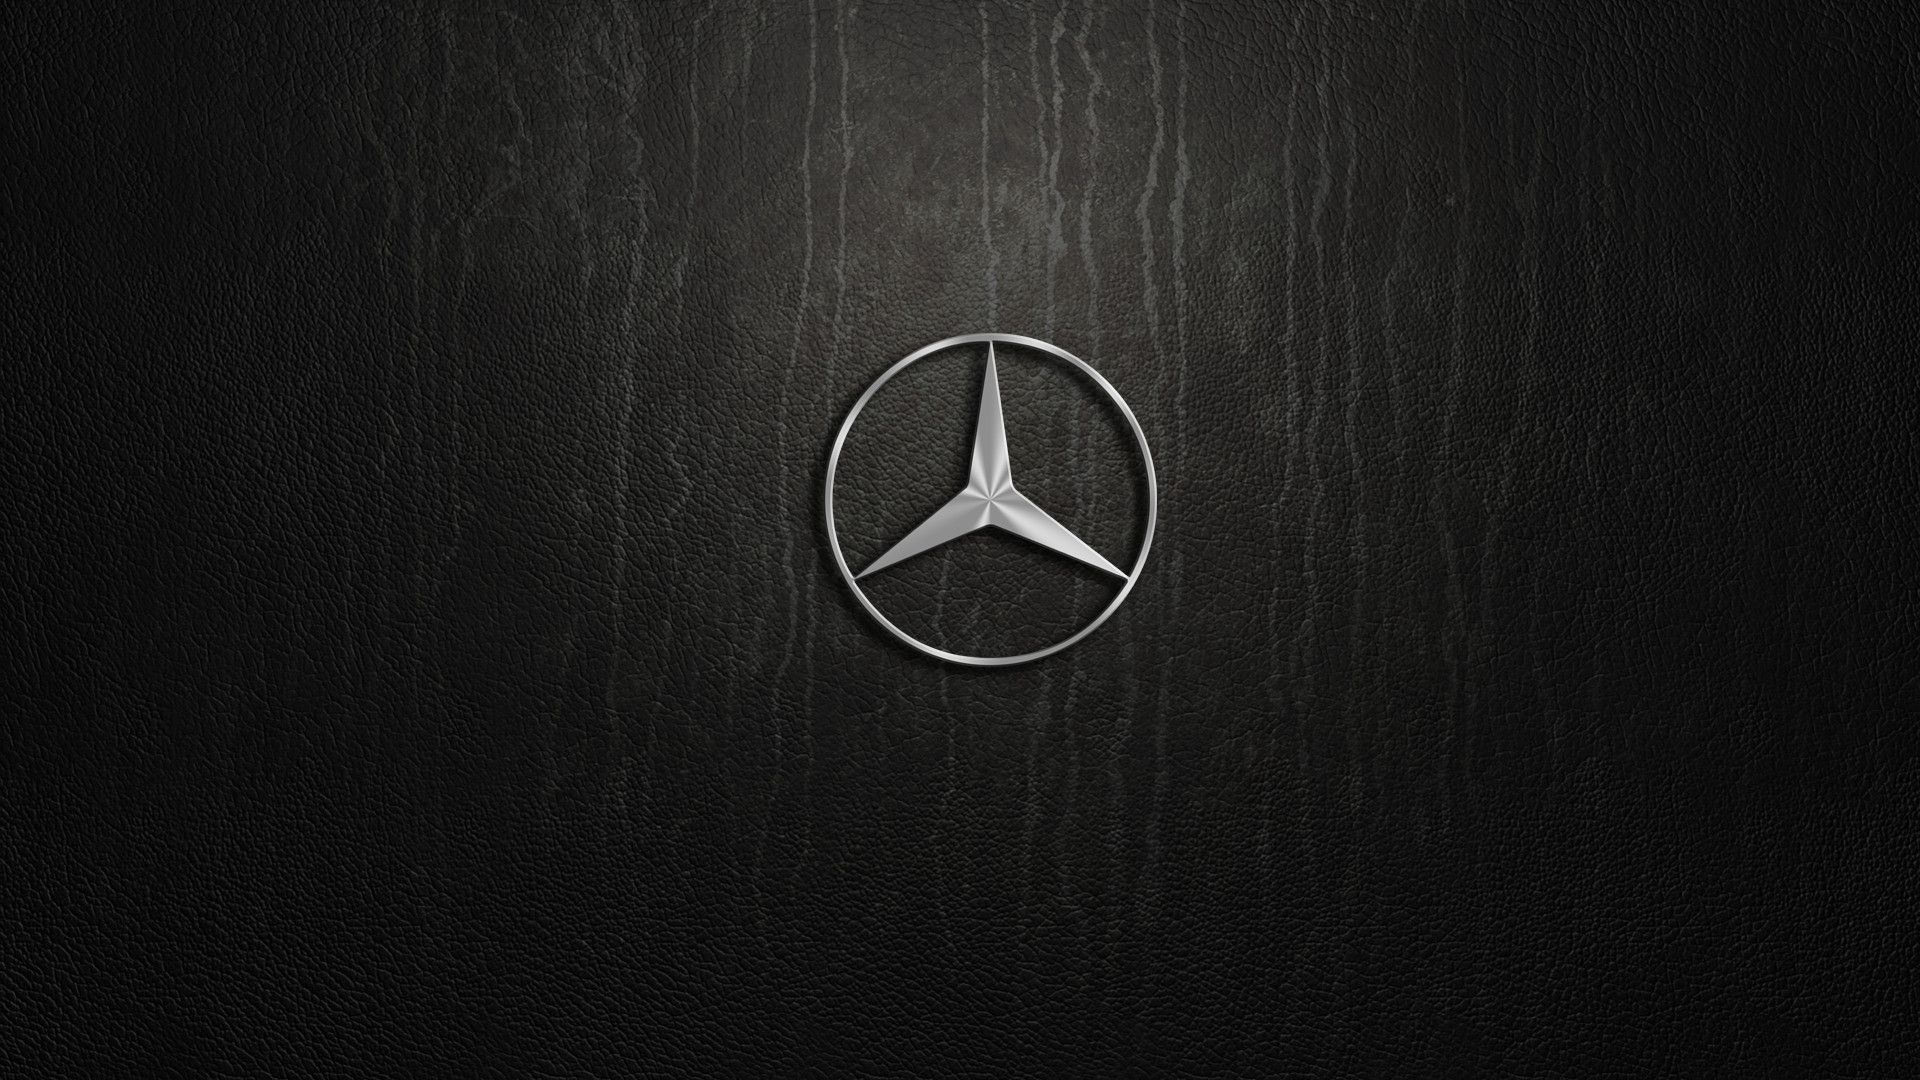 1920x1080 Mercedes Benz Logo Full Hd Wallpaper 1920x1080